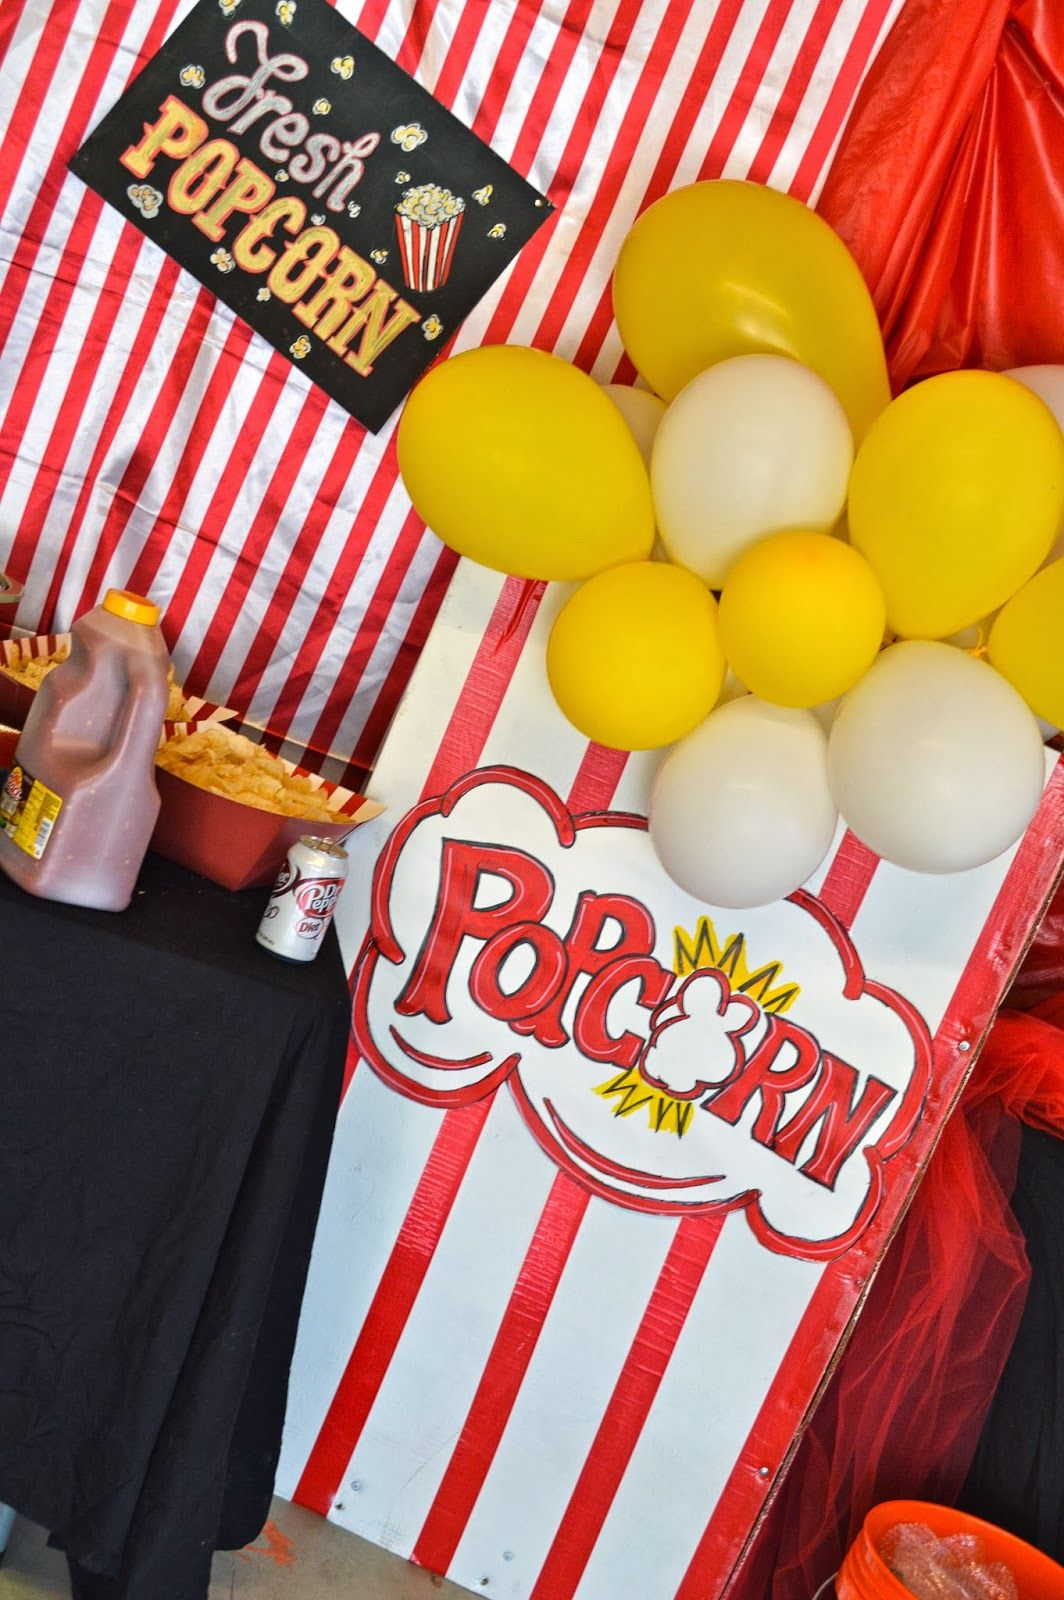 Homemade Circus Decorations Diy Party Decor Giant Popcorn Boxes Circus Carnival Party Diy